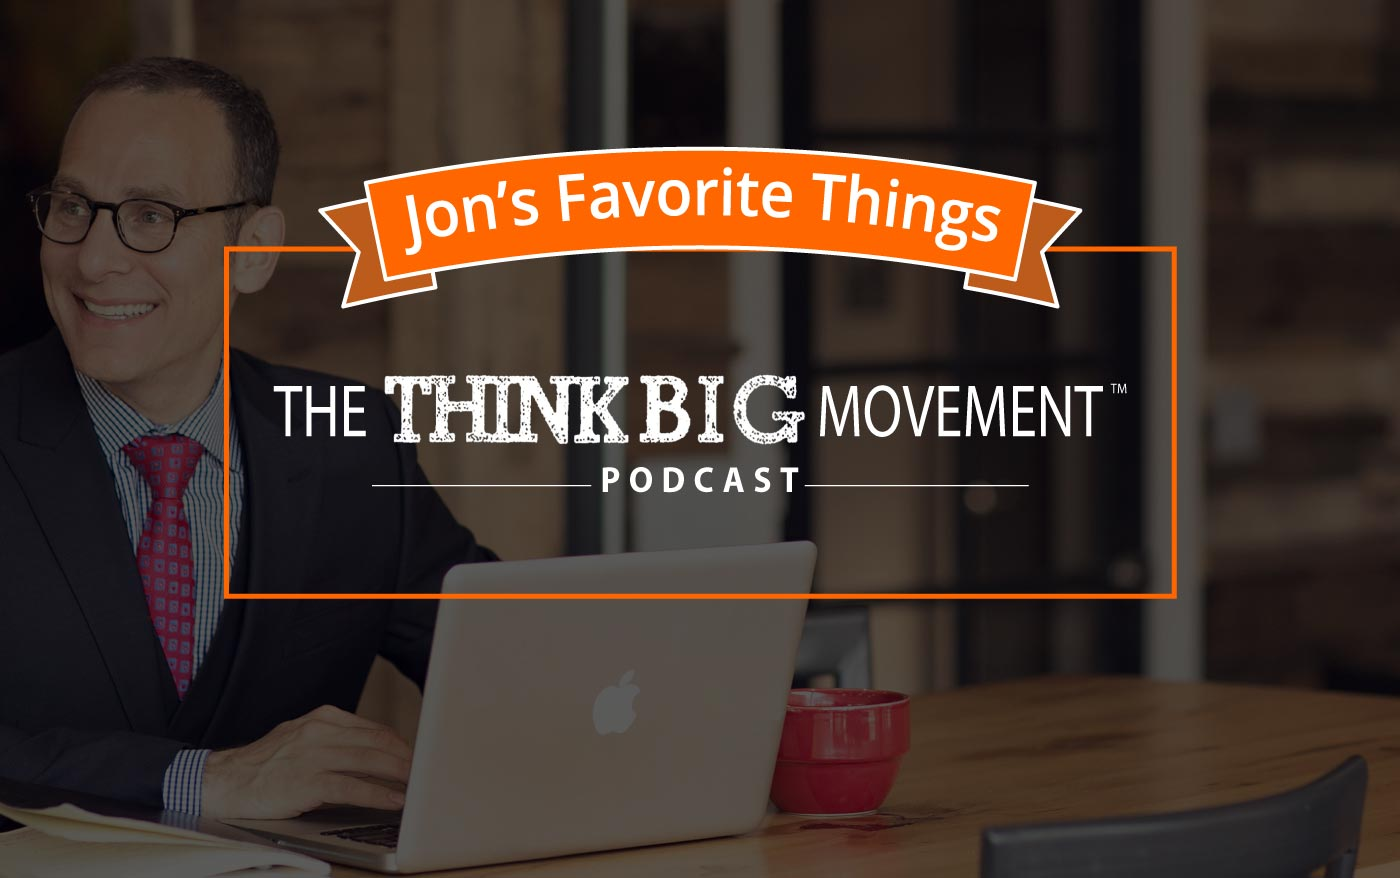 The Think Big Podcast - Jon's Favorite Things 20: You Don't Learn to Walk by Following Rules